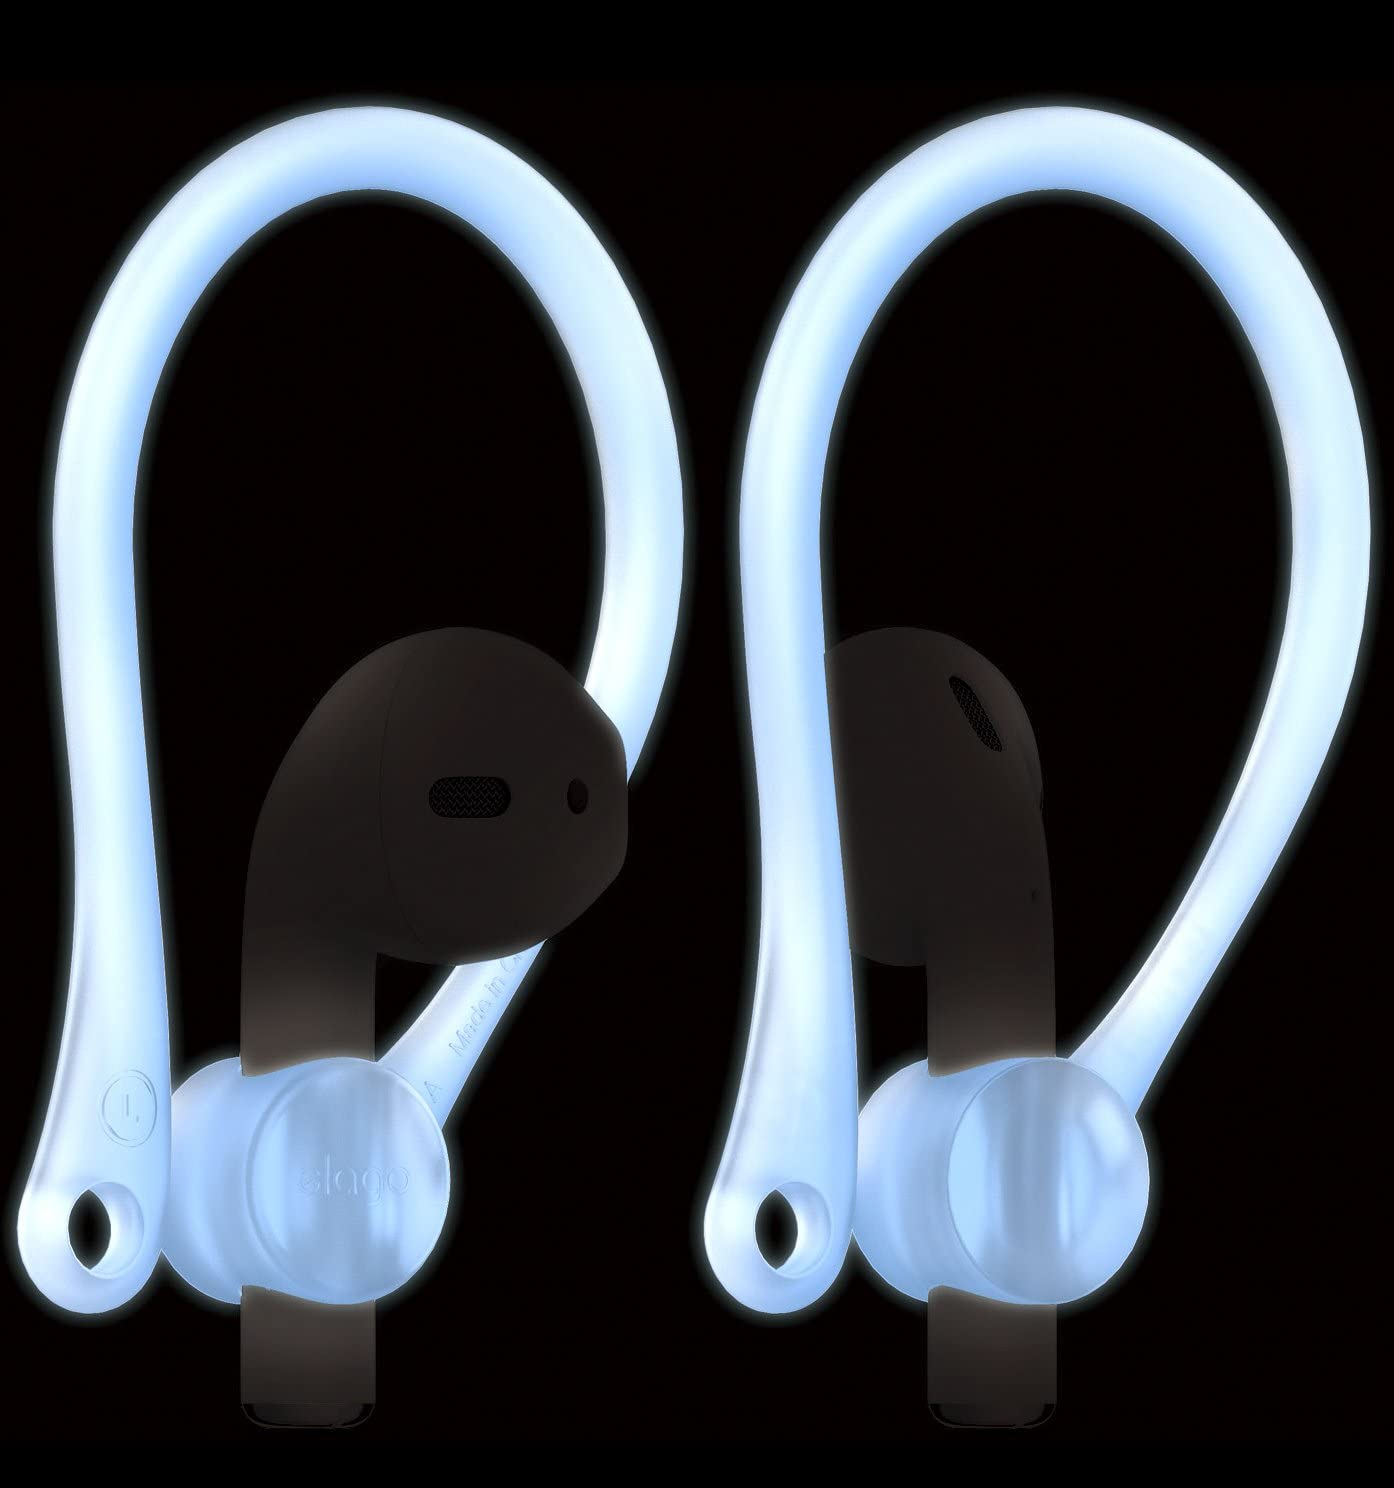 elago Upgraded Ear Hook Designed for Apple Airpods 1 & 2 and Designed for AirPods Pro, Ergonomic Design, Durable TPU Construction, Perfect for Exercising [Nightglow Blue]